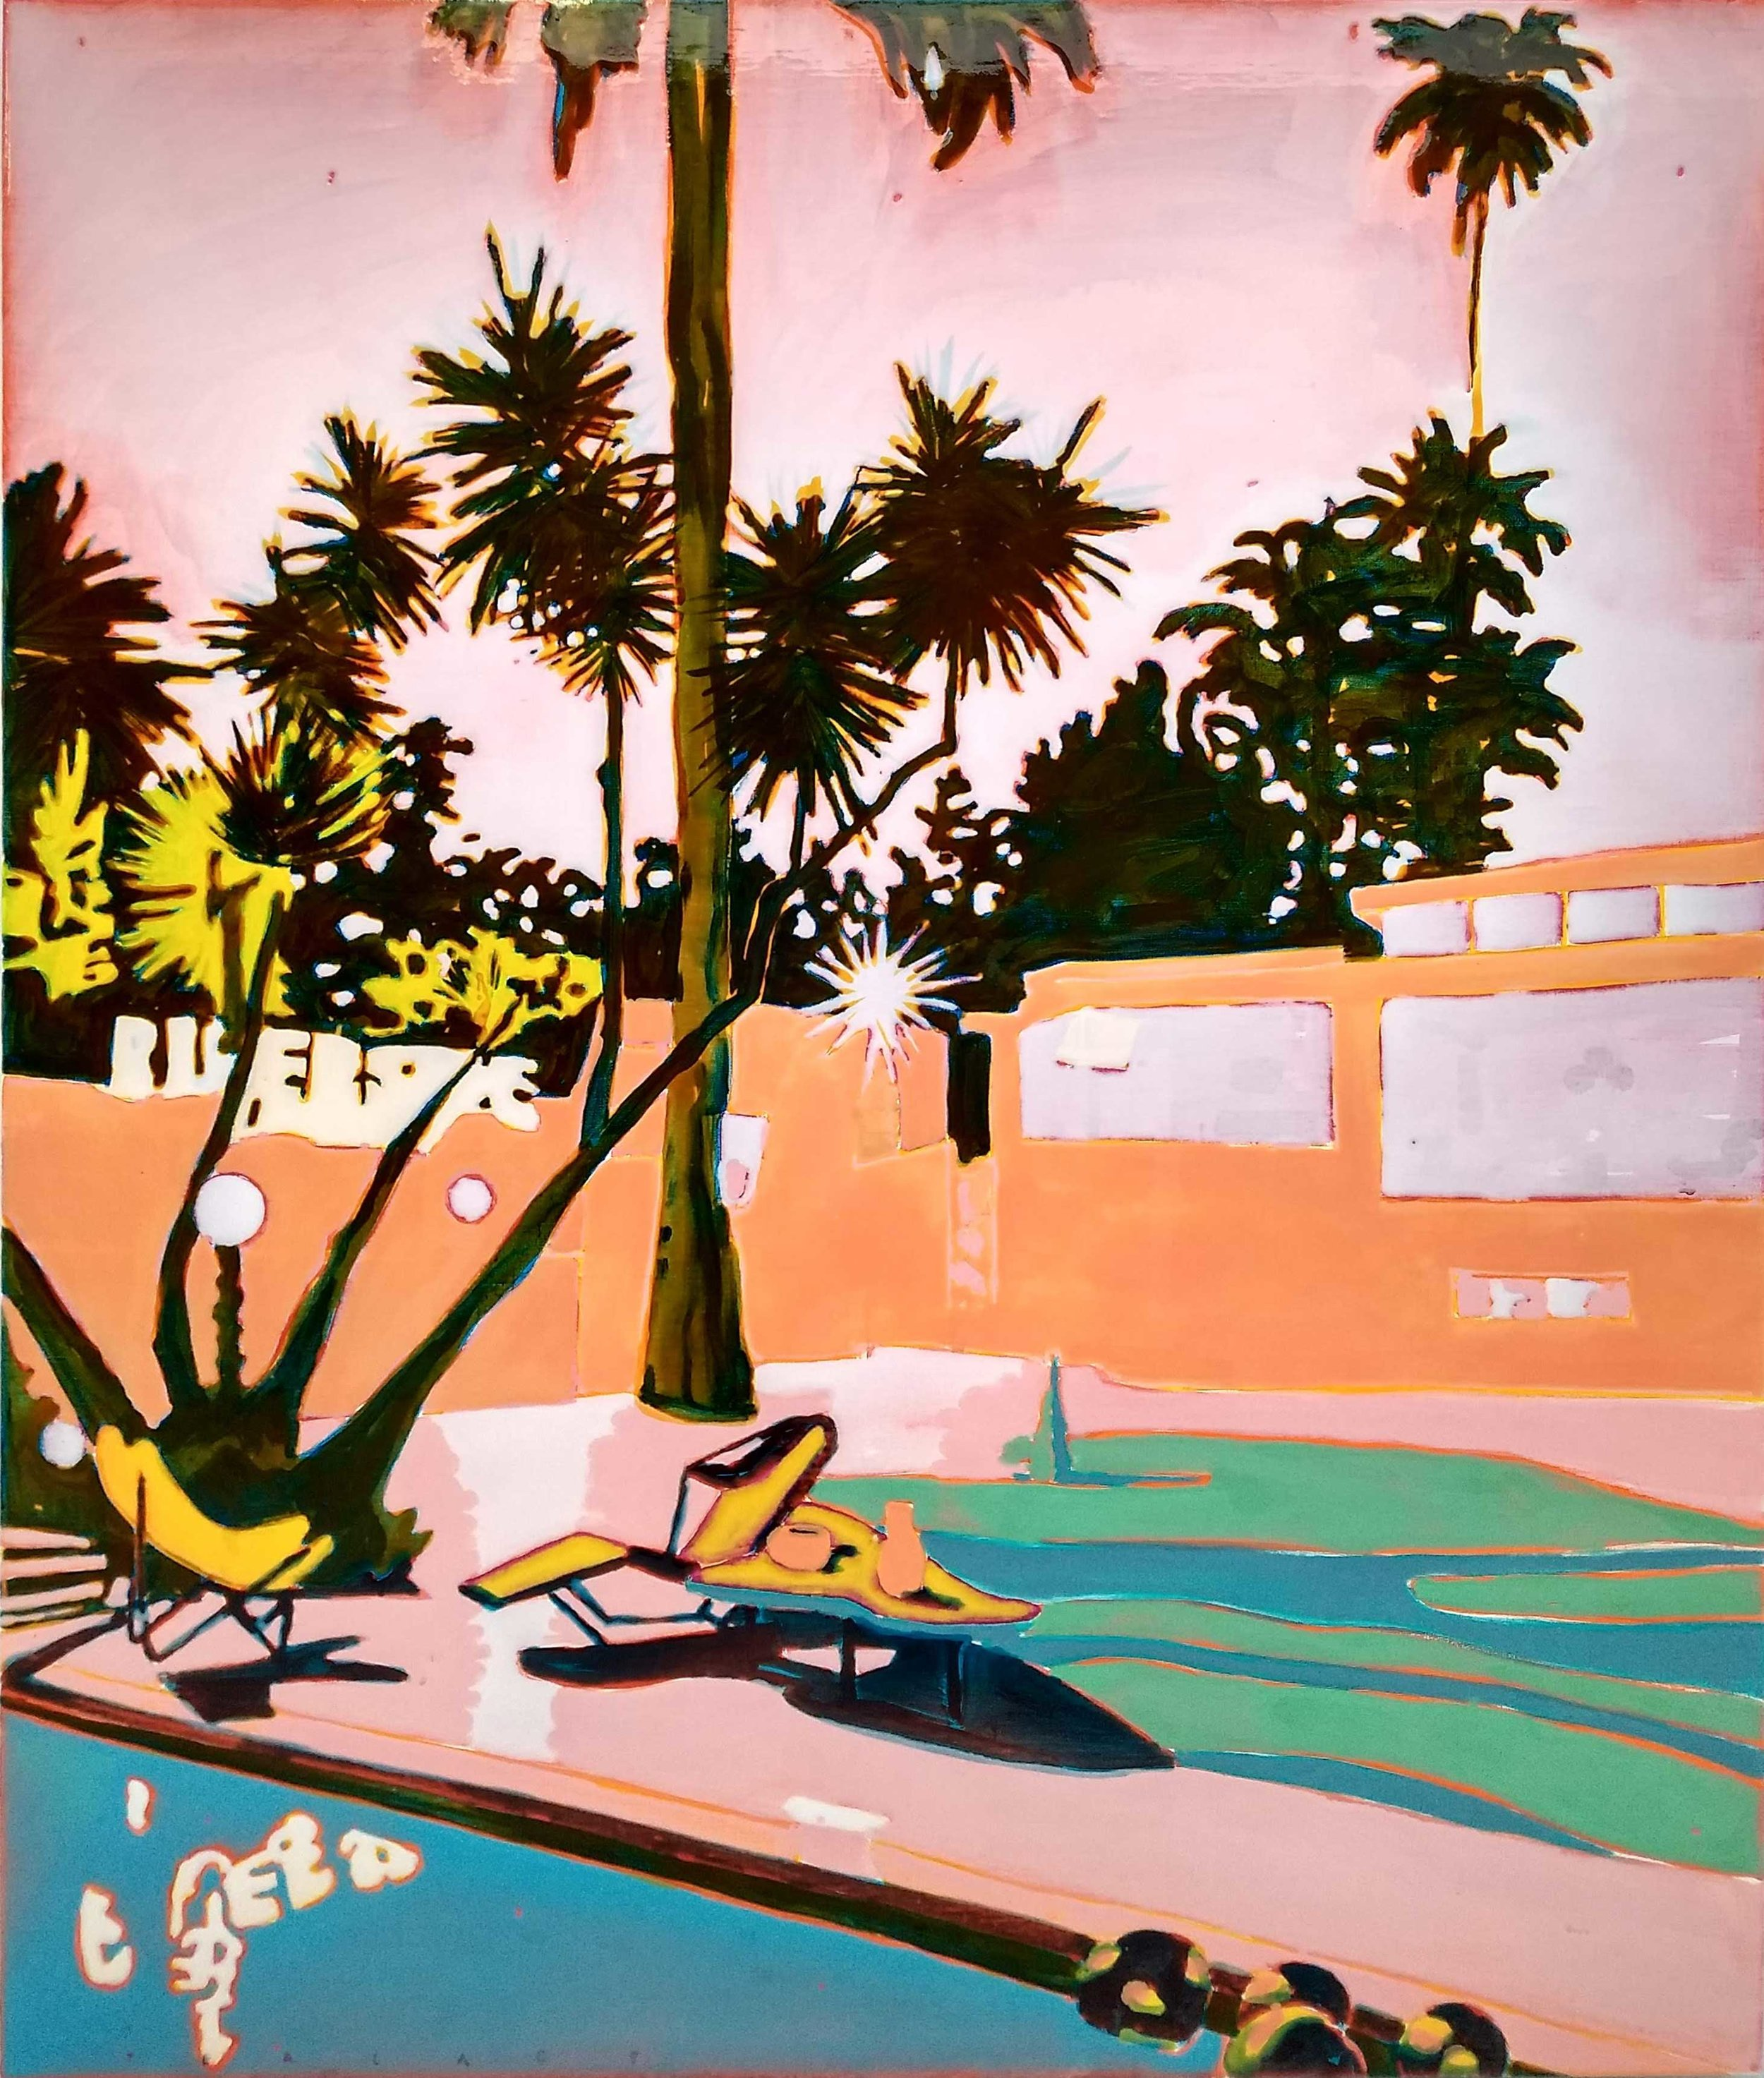 ONE OF THESE NIGHTS  120 x 100 cm Acrylic and epoxy on canvas  Sold